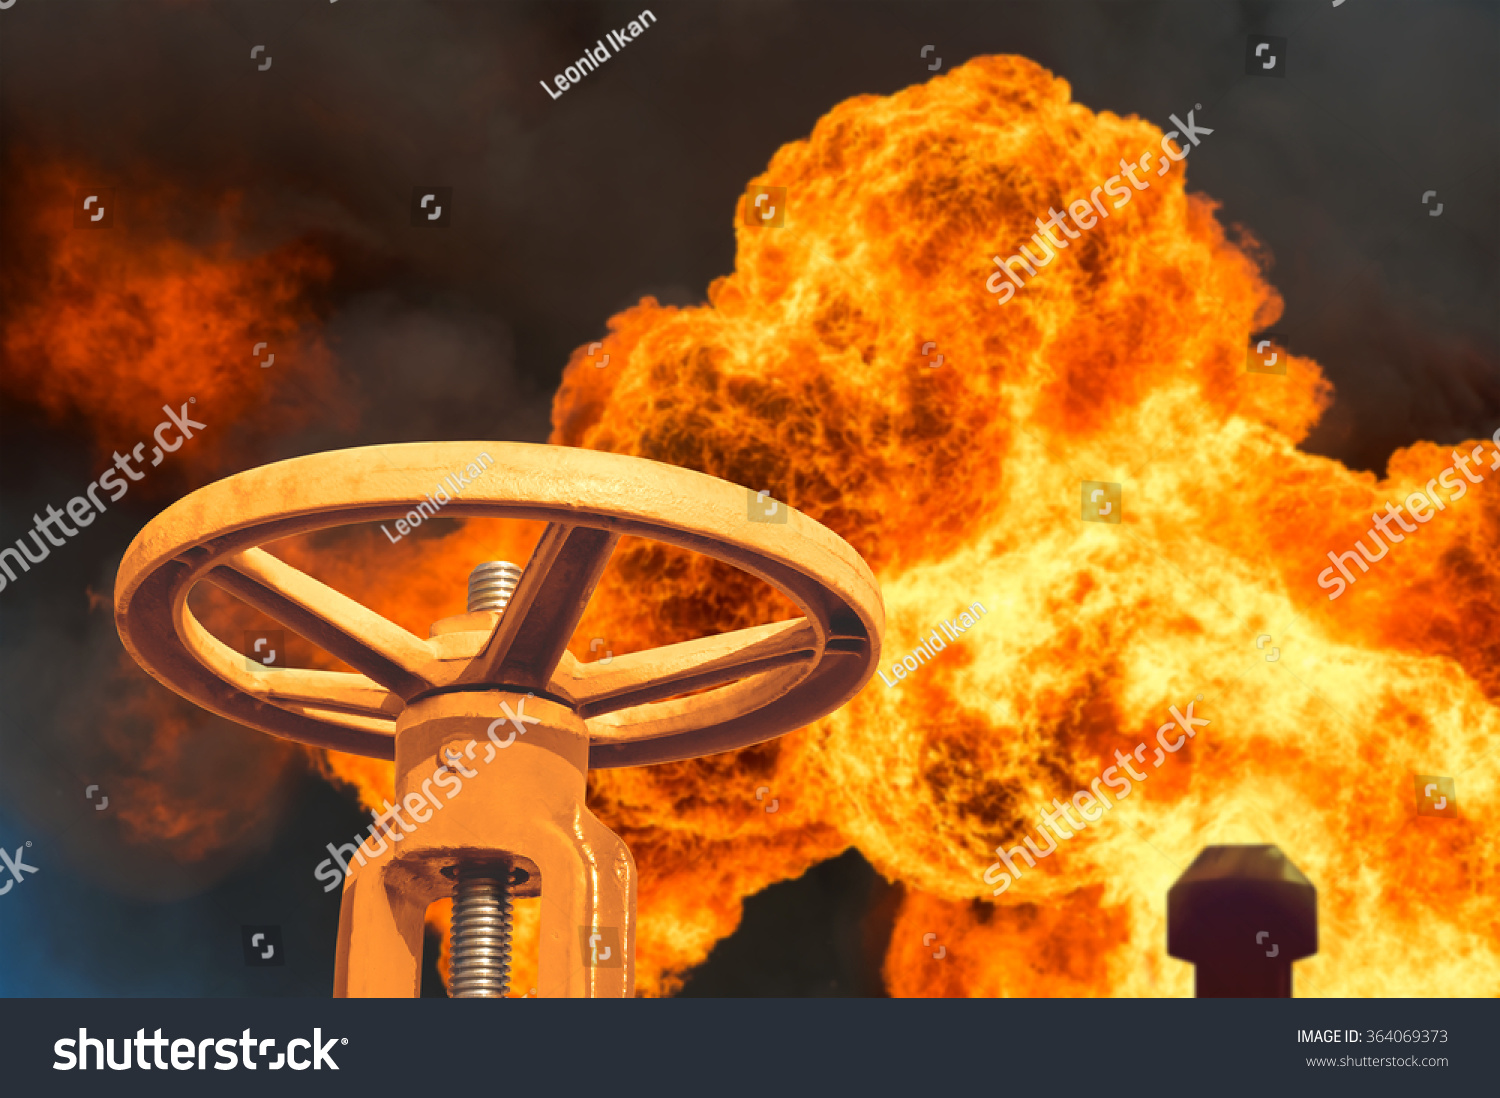 The gas valve on the background of flaming torch flame